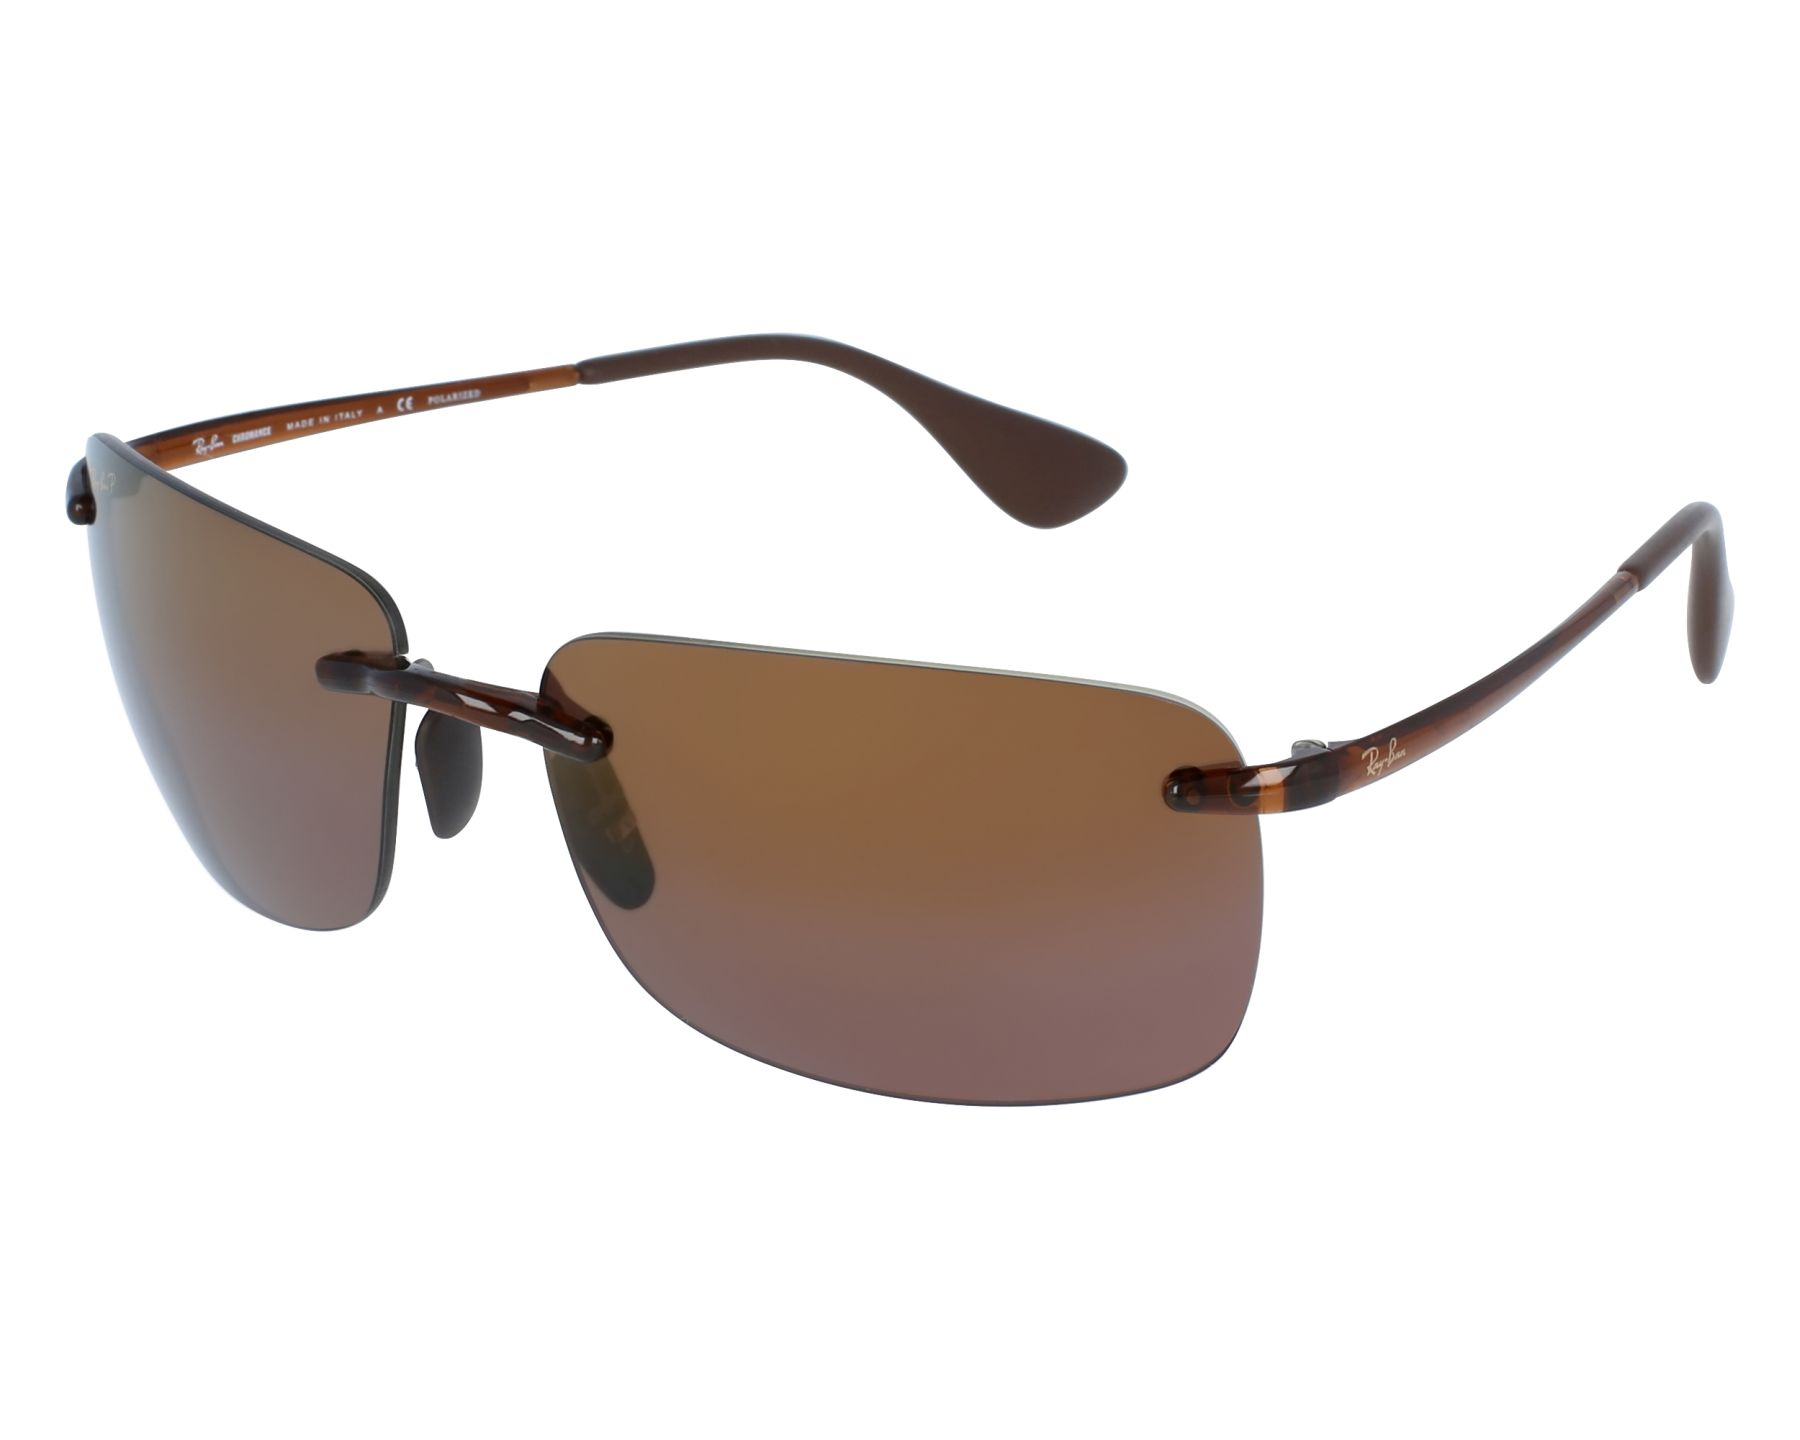 d3e09ba1a96 Sunglasses Ray-Ban RB-4255 604 6B 60-15 Brown front view